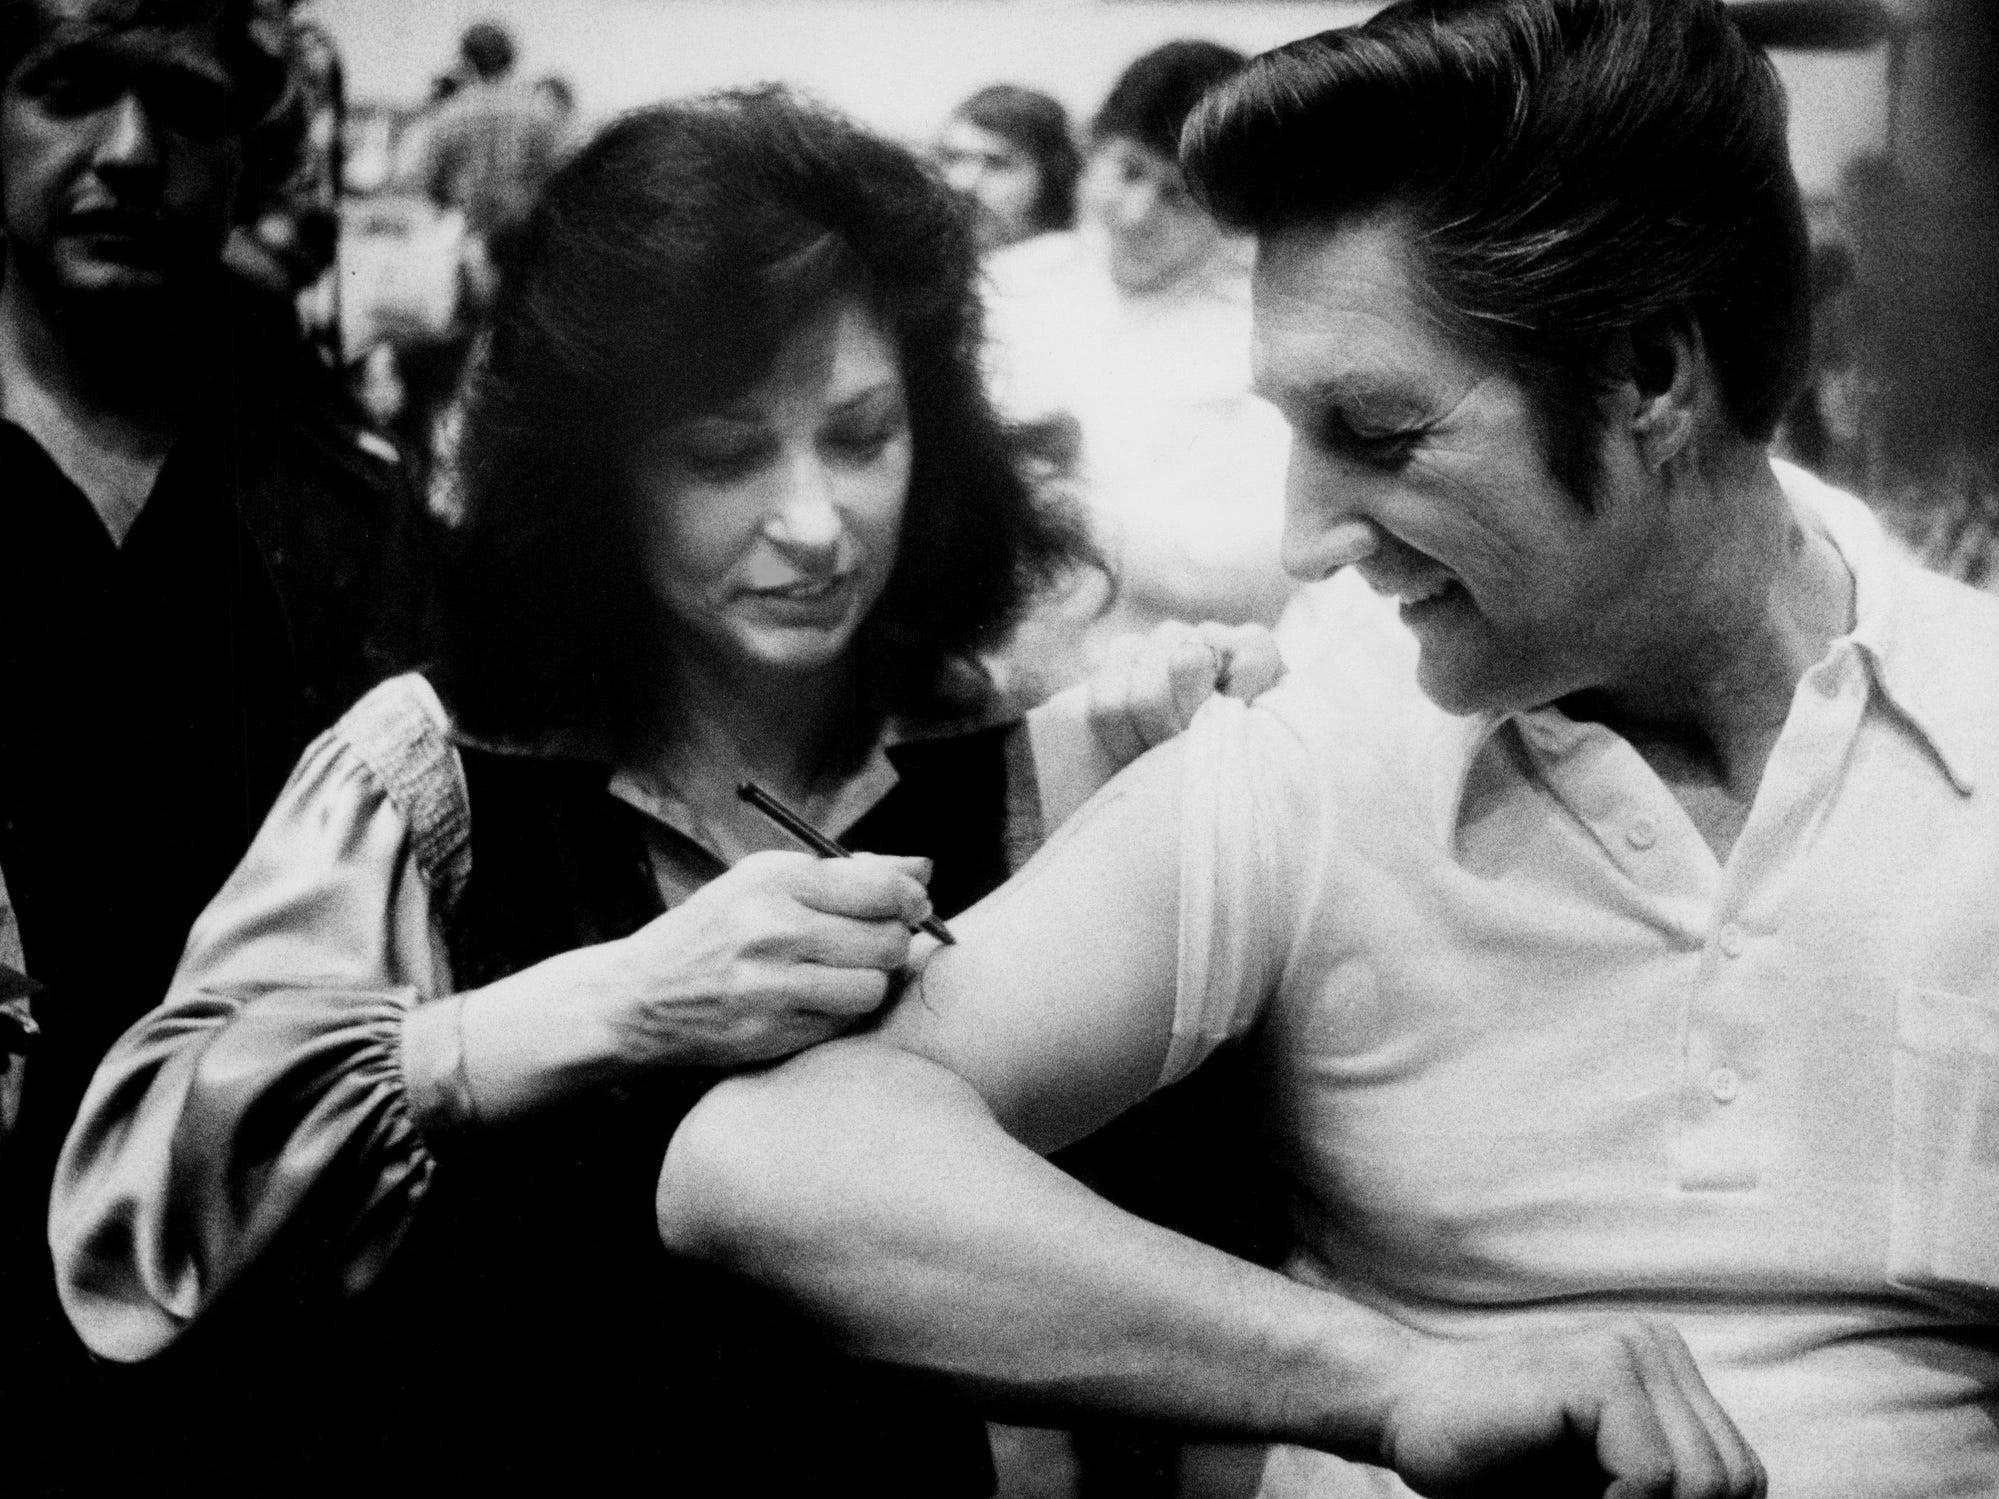 """Loretta Lynn, center, signs a autograph on the arm of a fan during a break in the filming of one of the biggest scenes in """"Coal Miner's Daughter"""" in Nashville on April 24, 1979."""